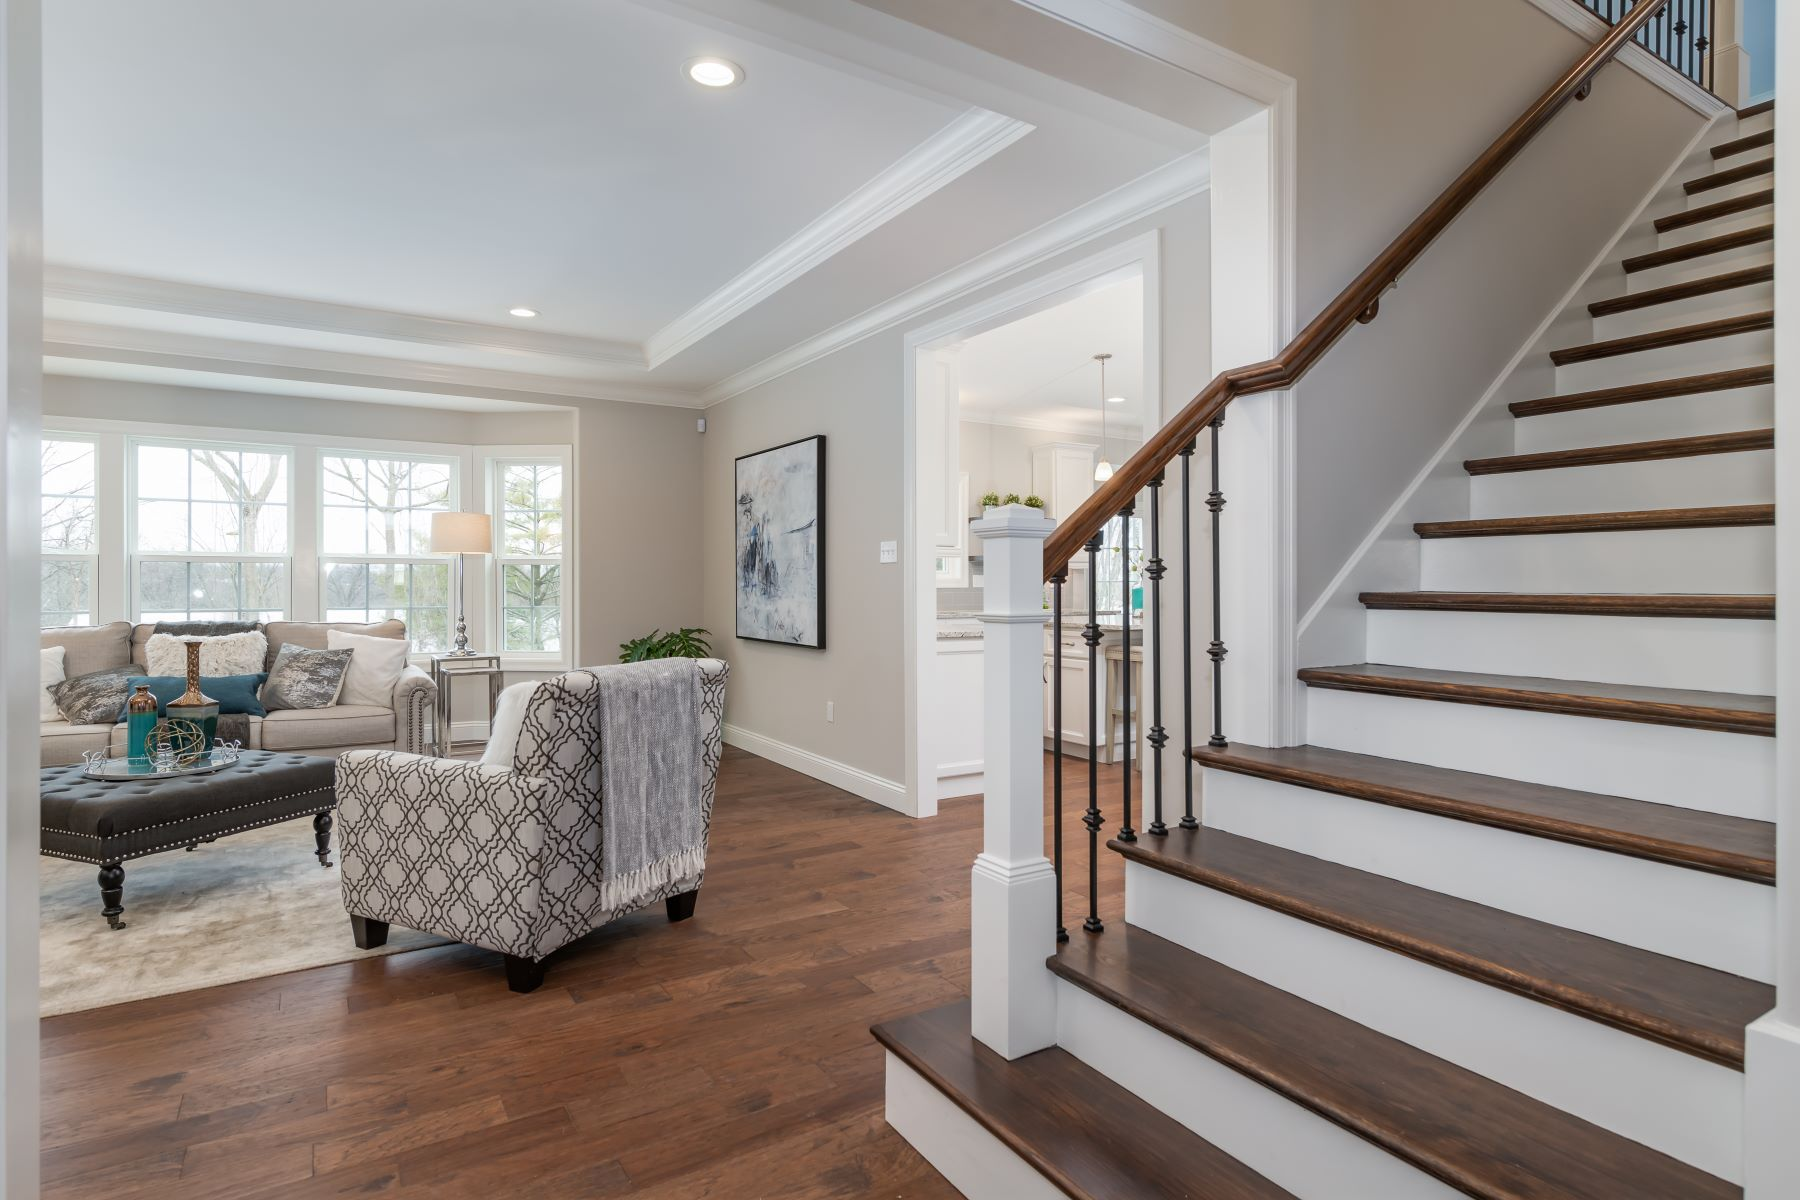 Additional photo for property listing at Gorgeous Two Story-New Construction 1433 Craig Road St. Louis, Missouri 63146 United States